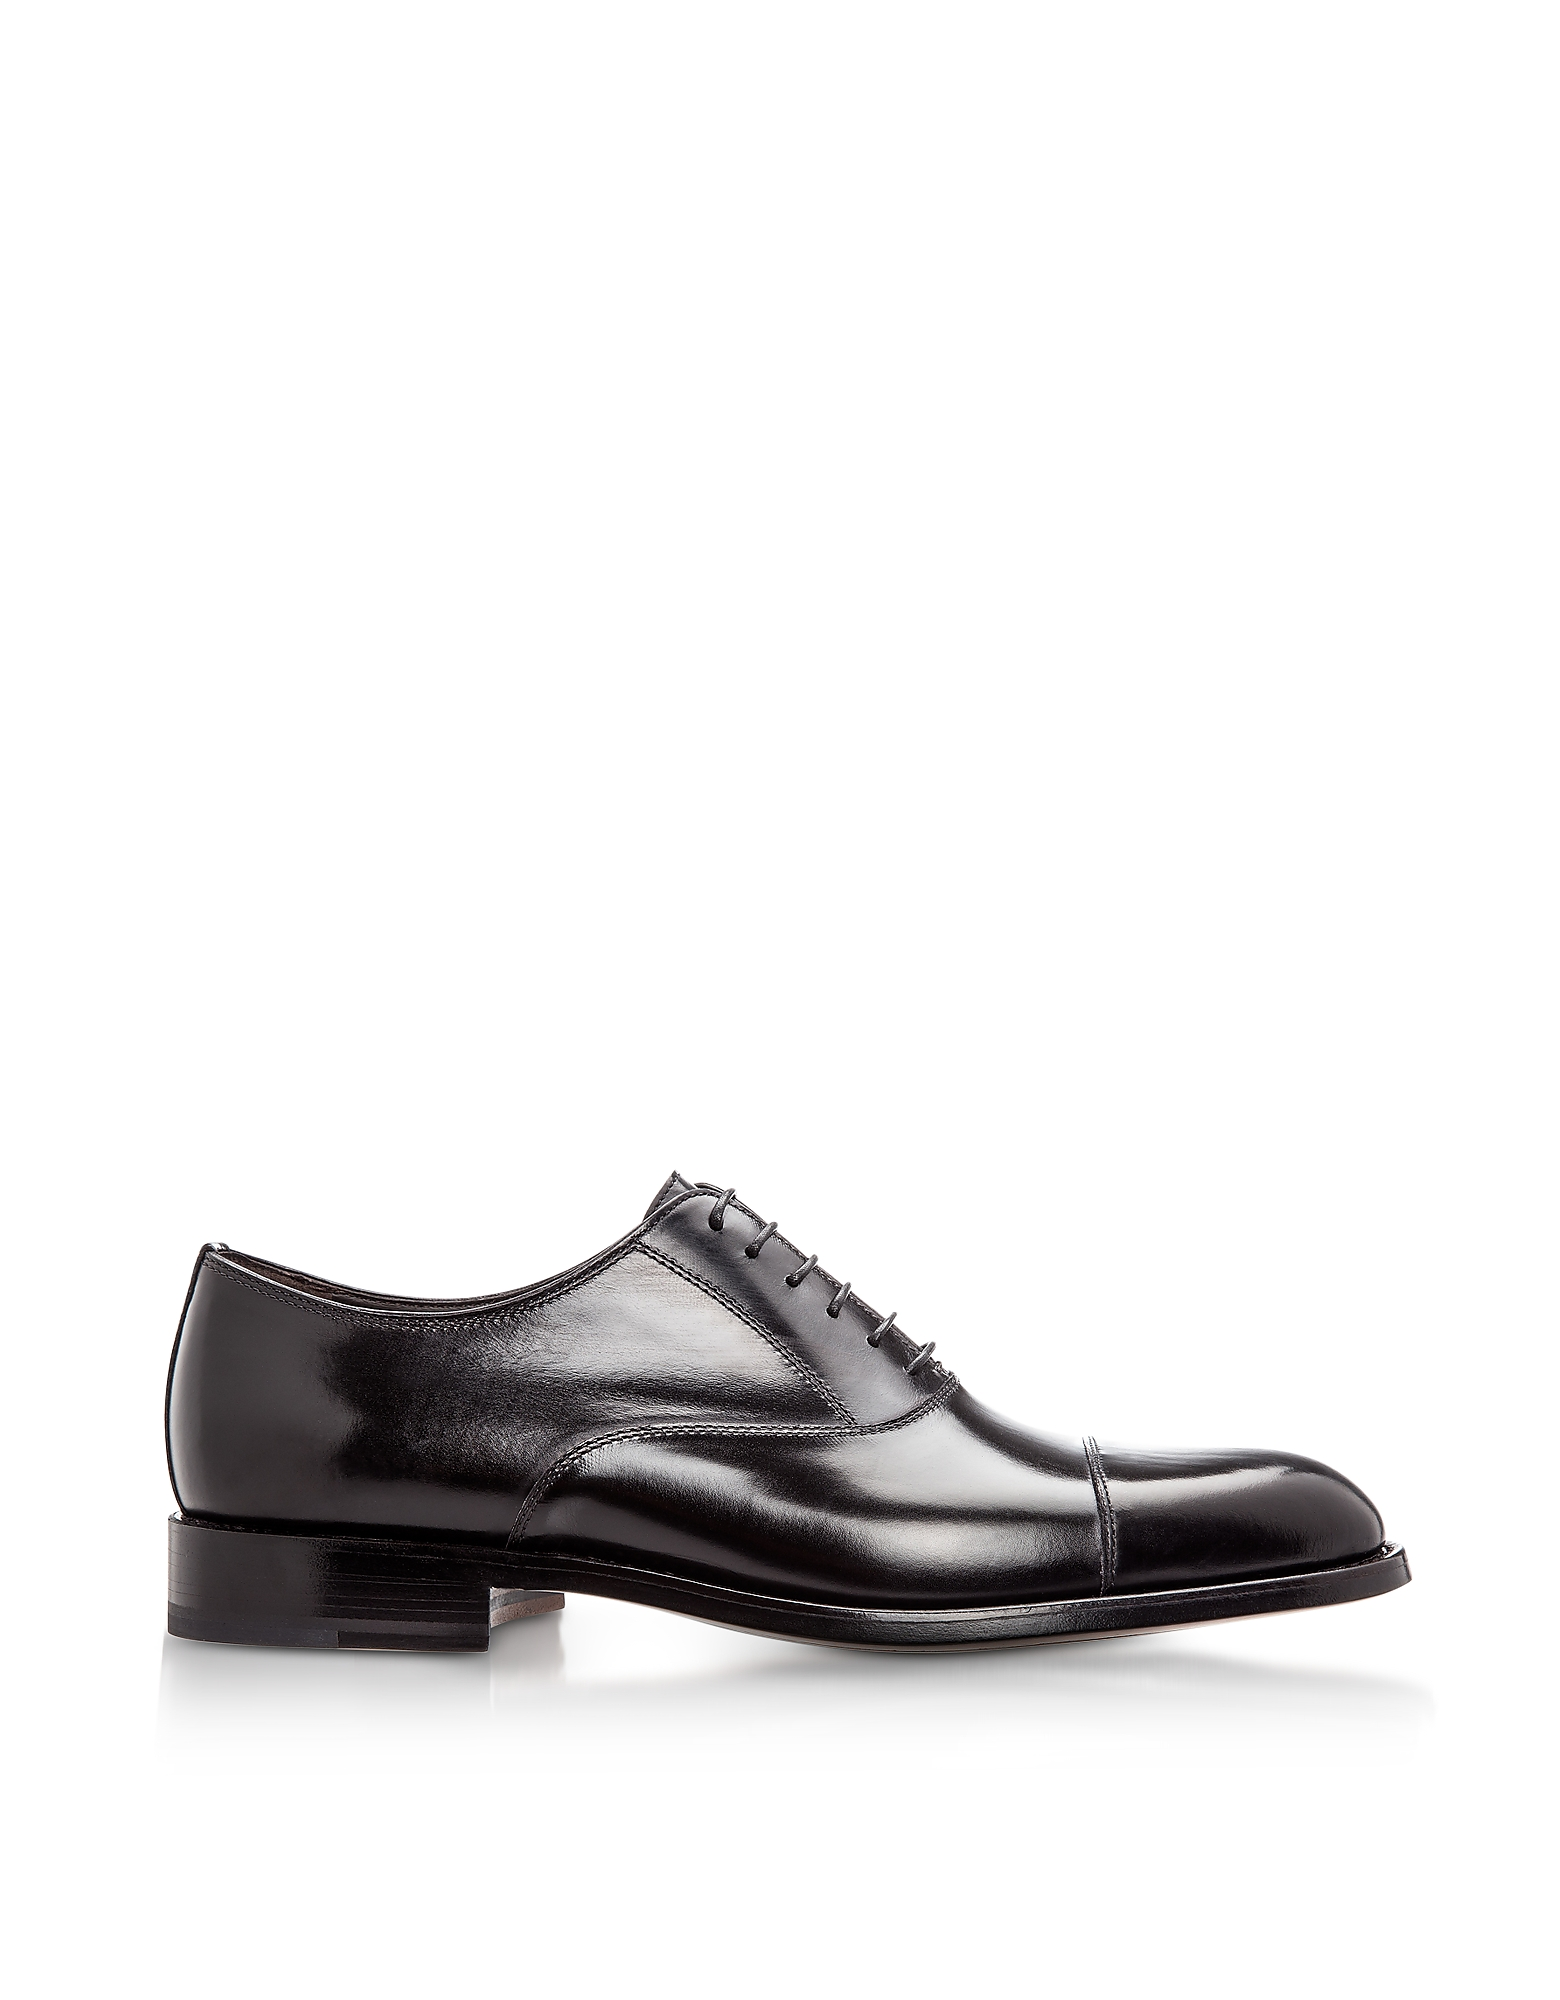 Moreschi Shoes, New York Black M Calfskin Oxford Shoes